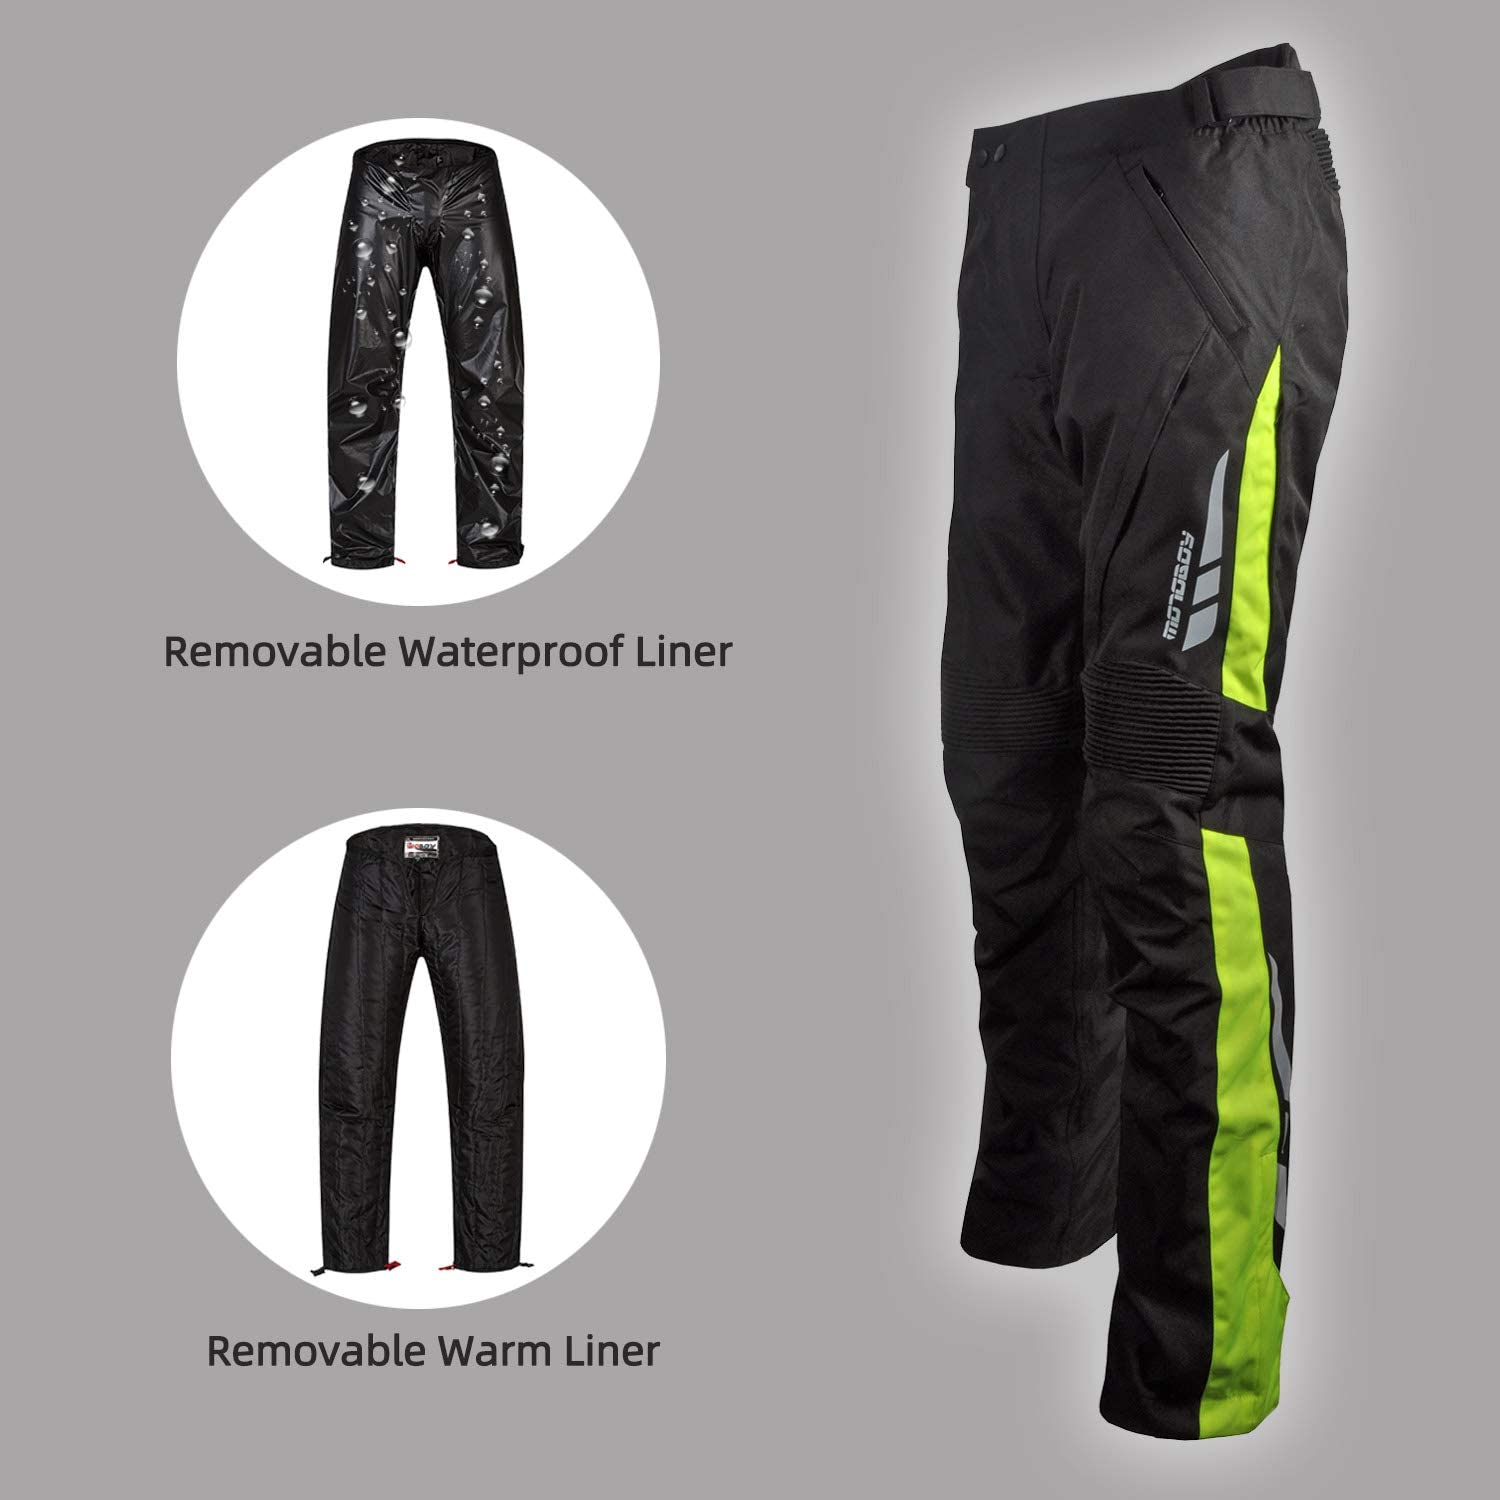 L, Grey//Black Waterproof Thickened Motorcycle Riding Pants,All-Weather Removable CE Armored Windproof Thermal Motorbike Pants for Men